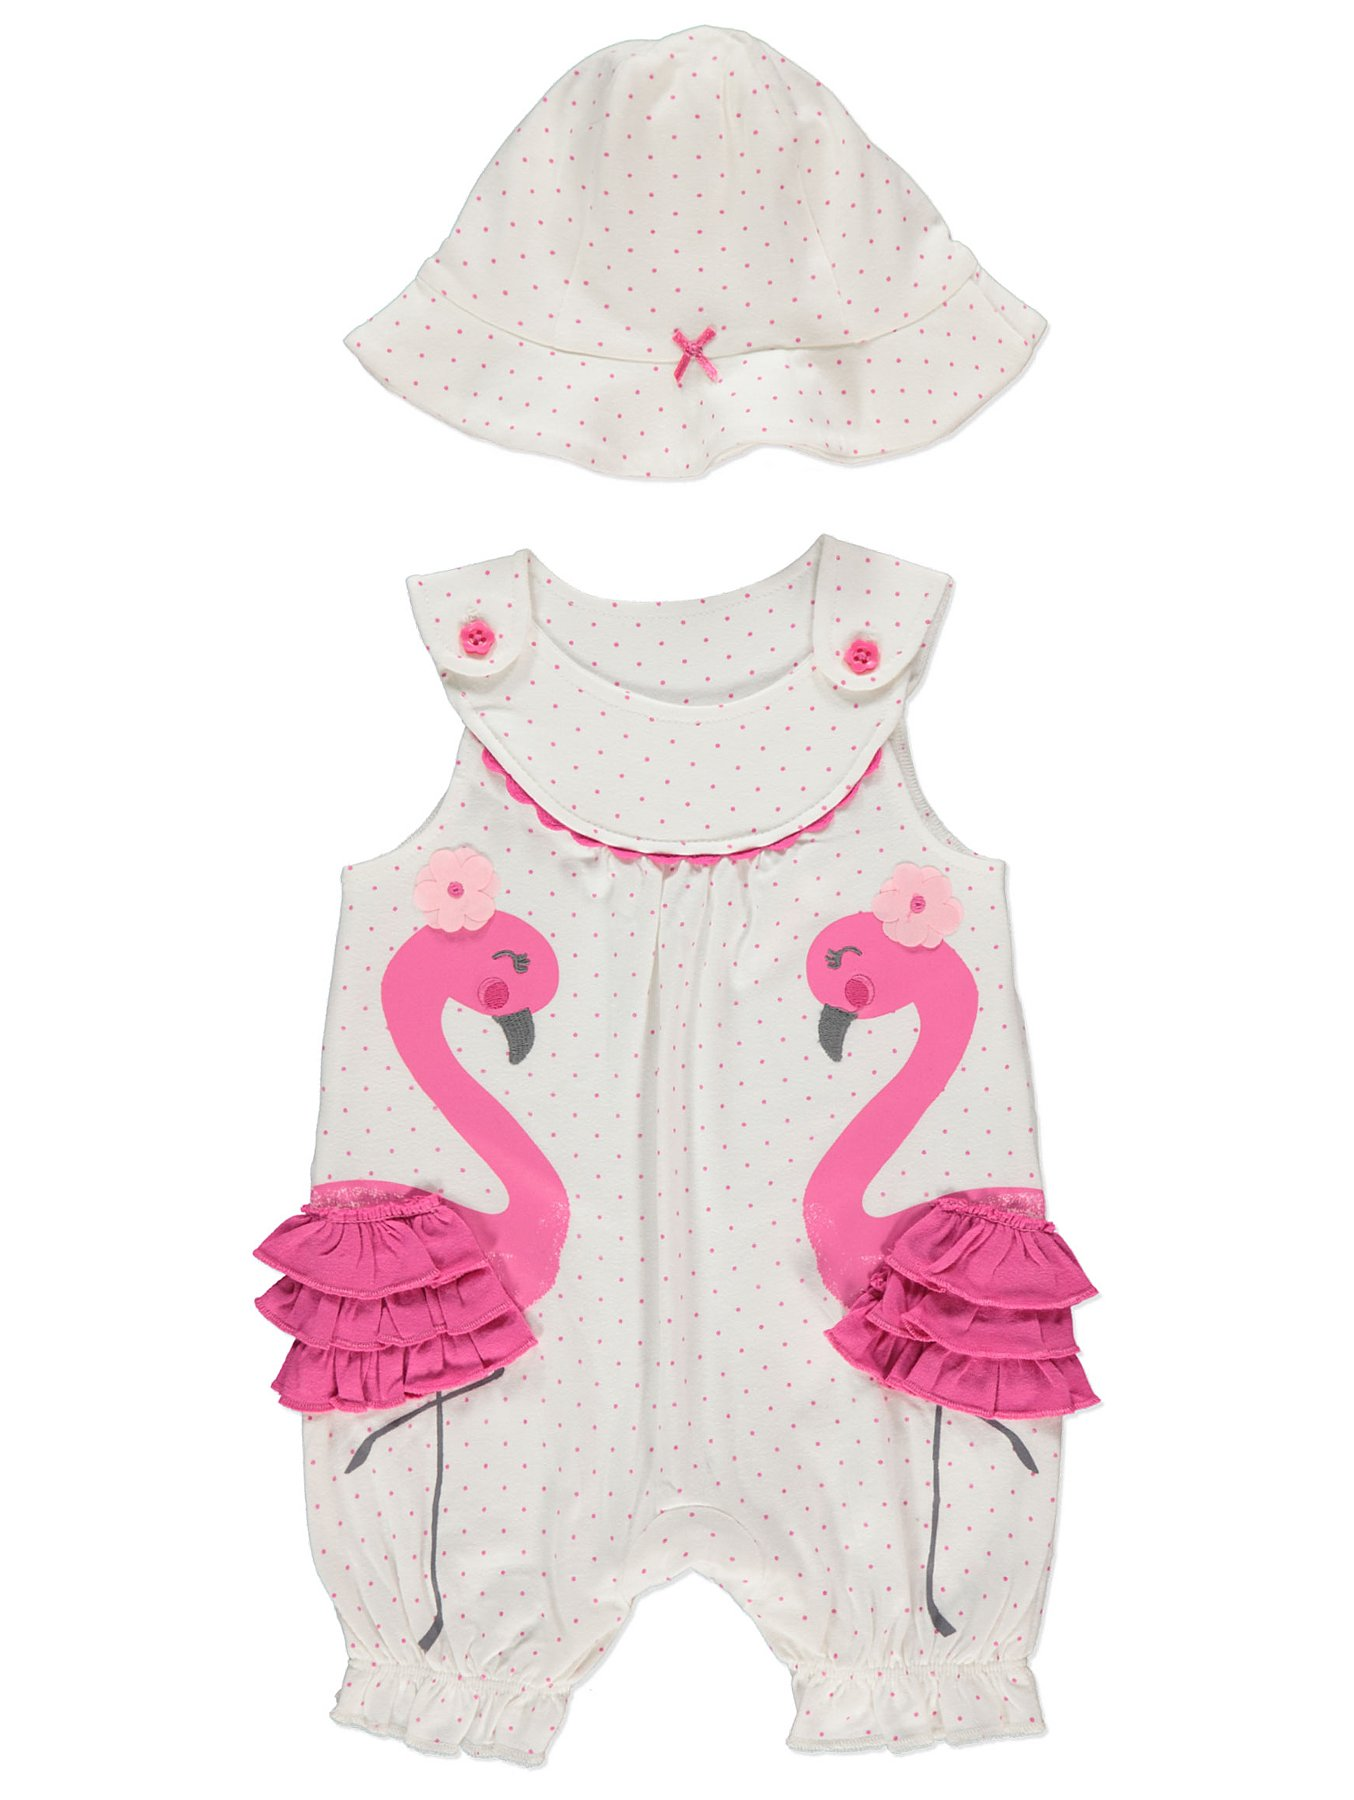 e23c0a4e4 Pink Flamingo Polka Dot Romper and Hat Outfit | Baby | George